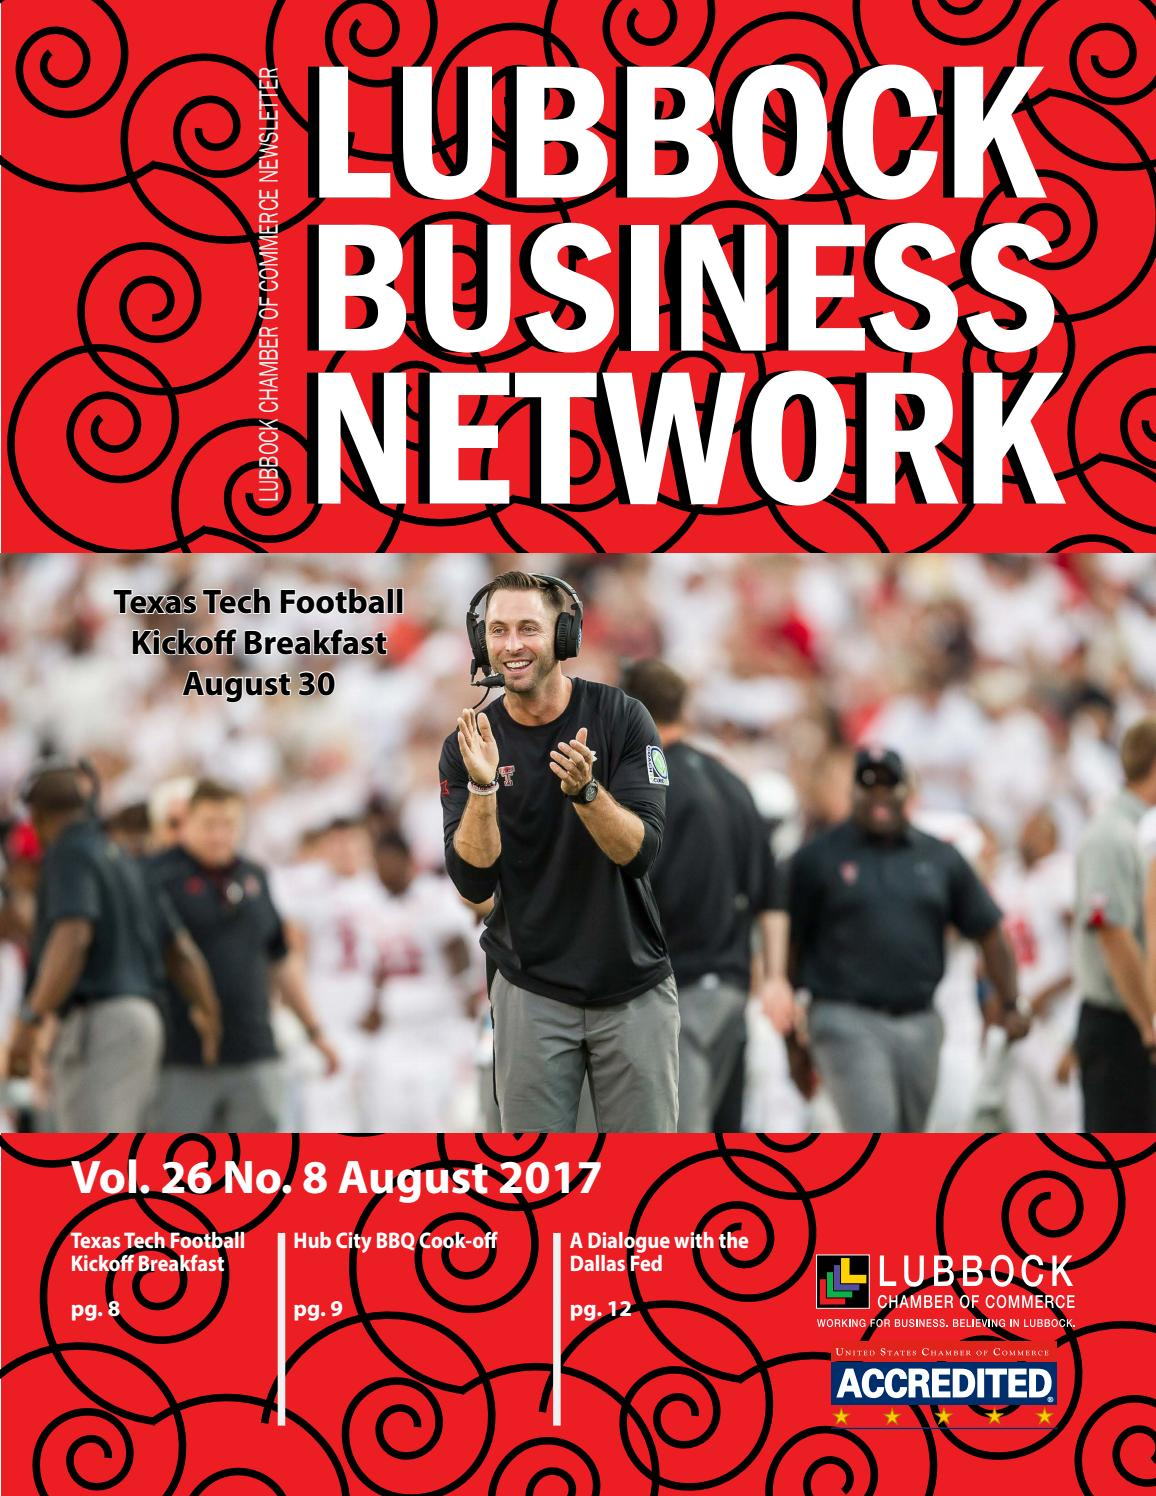 Lubbock Business Network - August 2017 Newsletter by Lubbock